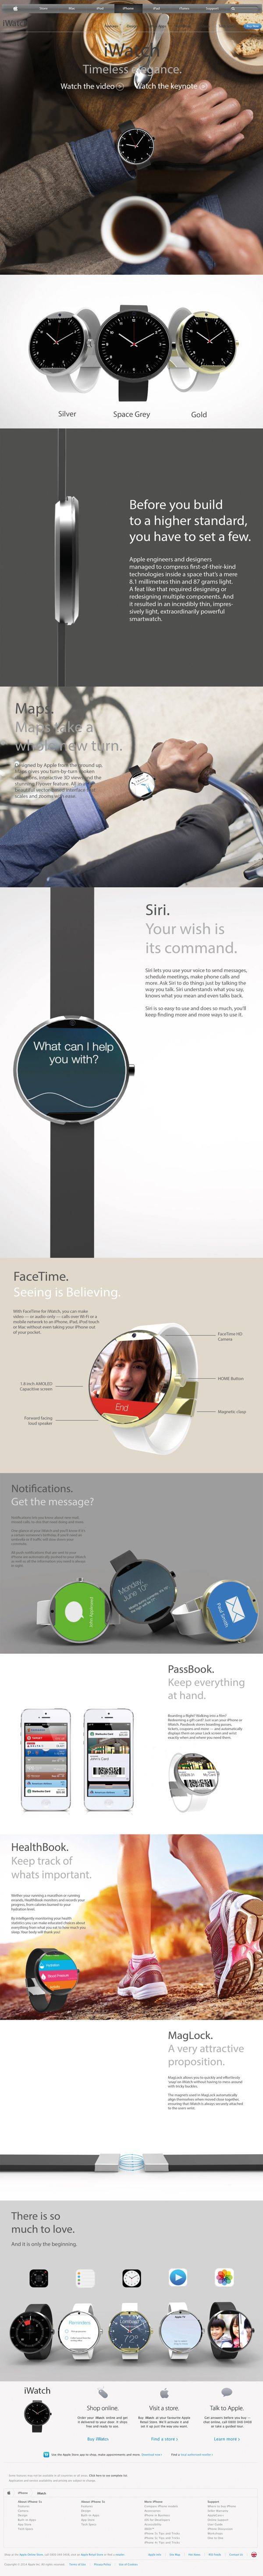 Apple iWatch Concept by Dominic Waring, via Behance